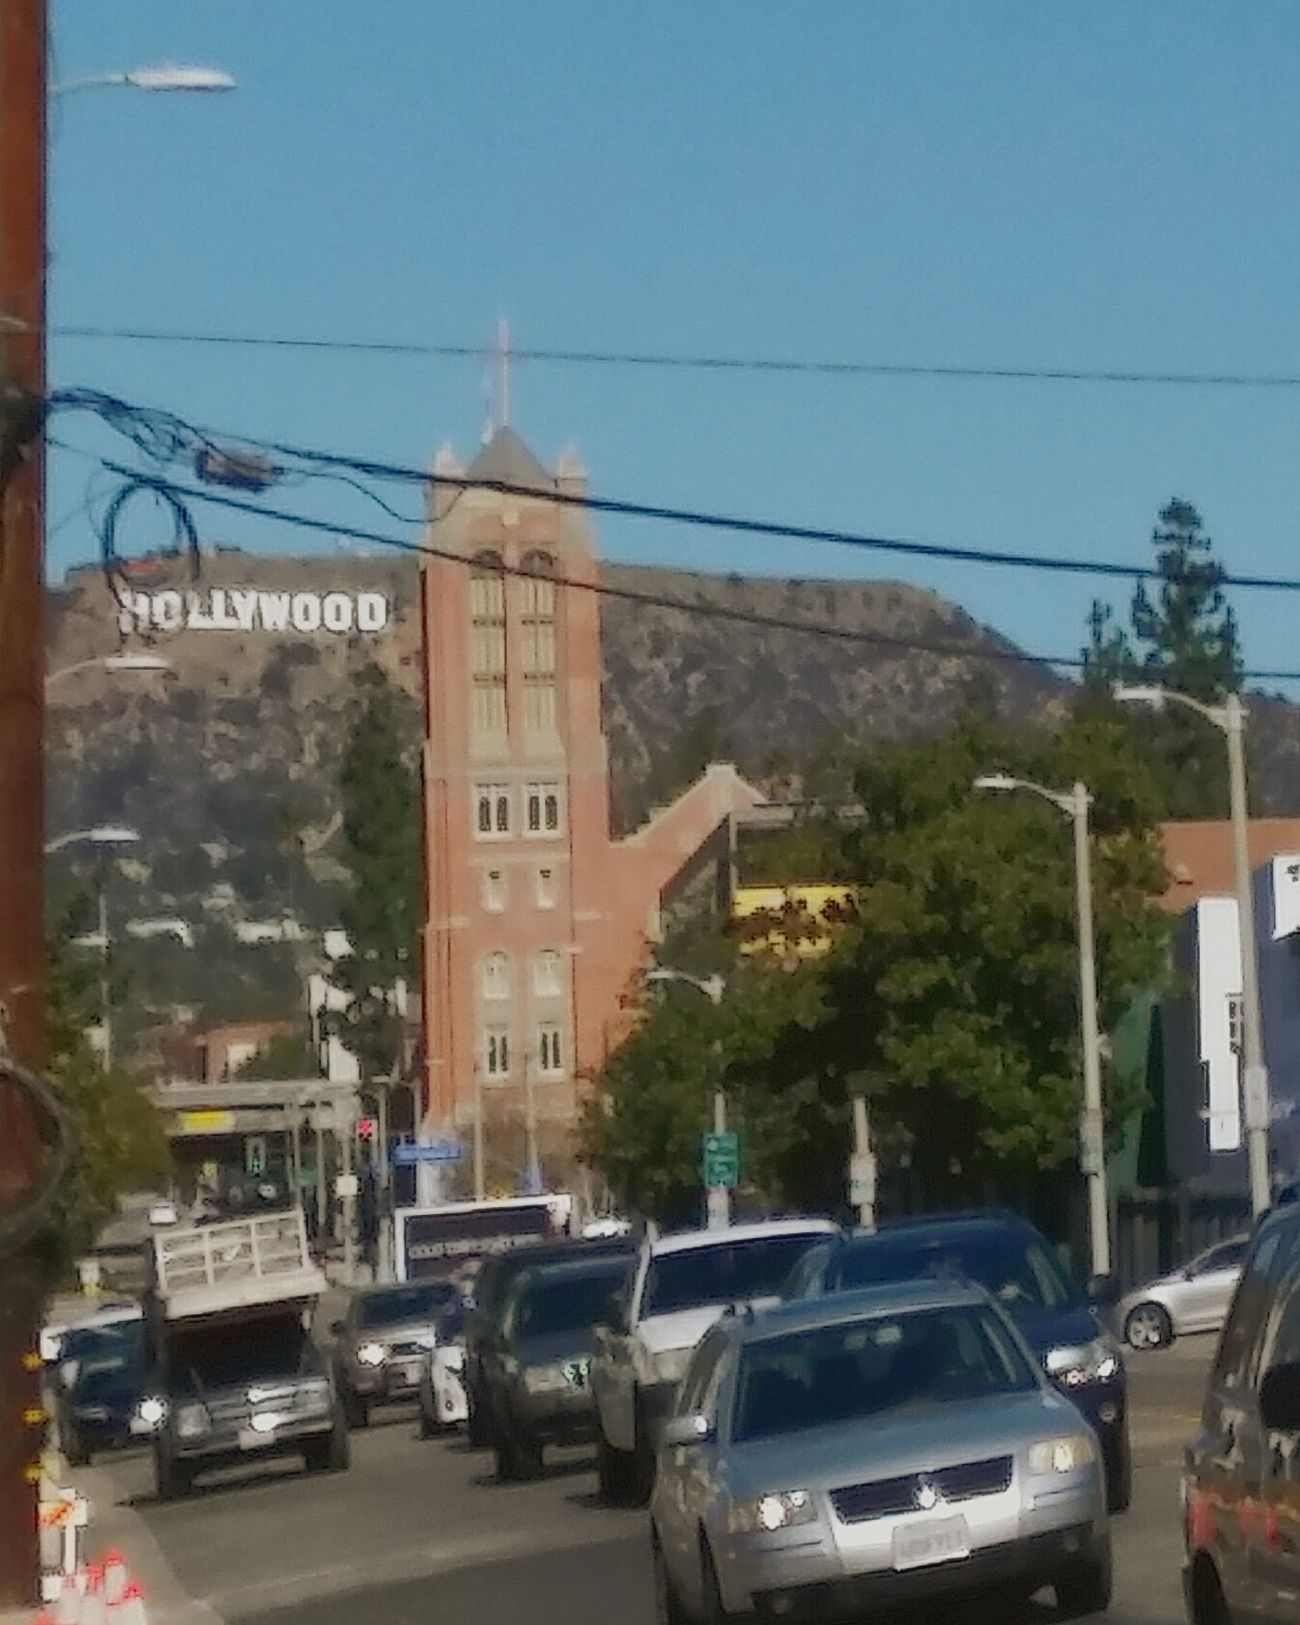 Hollywood Hollywood Sign Losangeles Sunset Blvd. Market